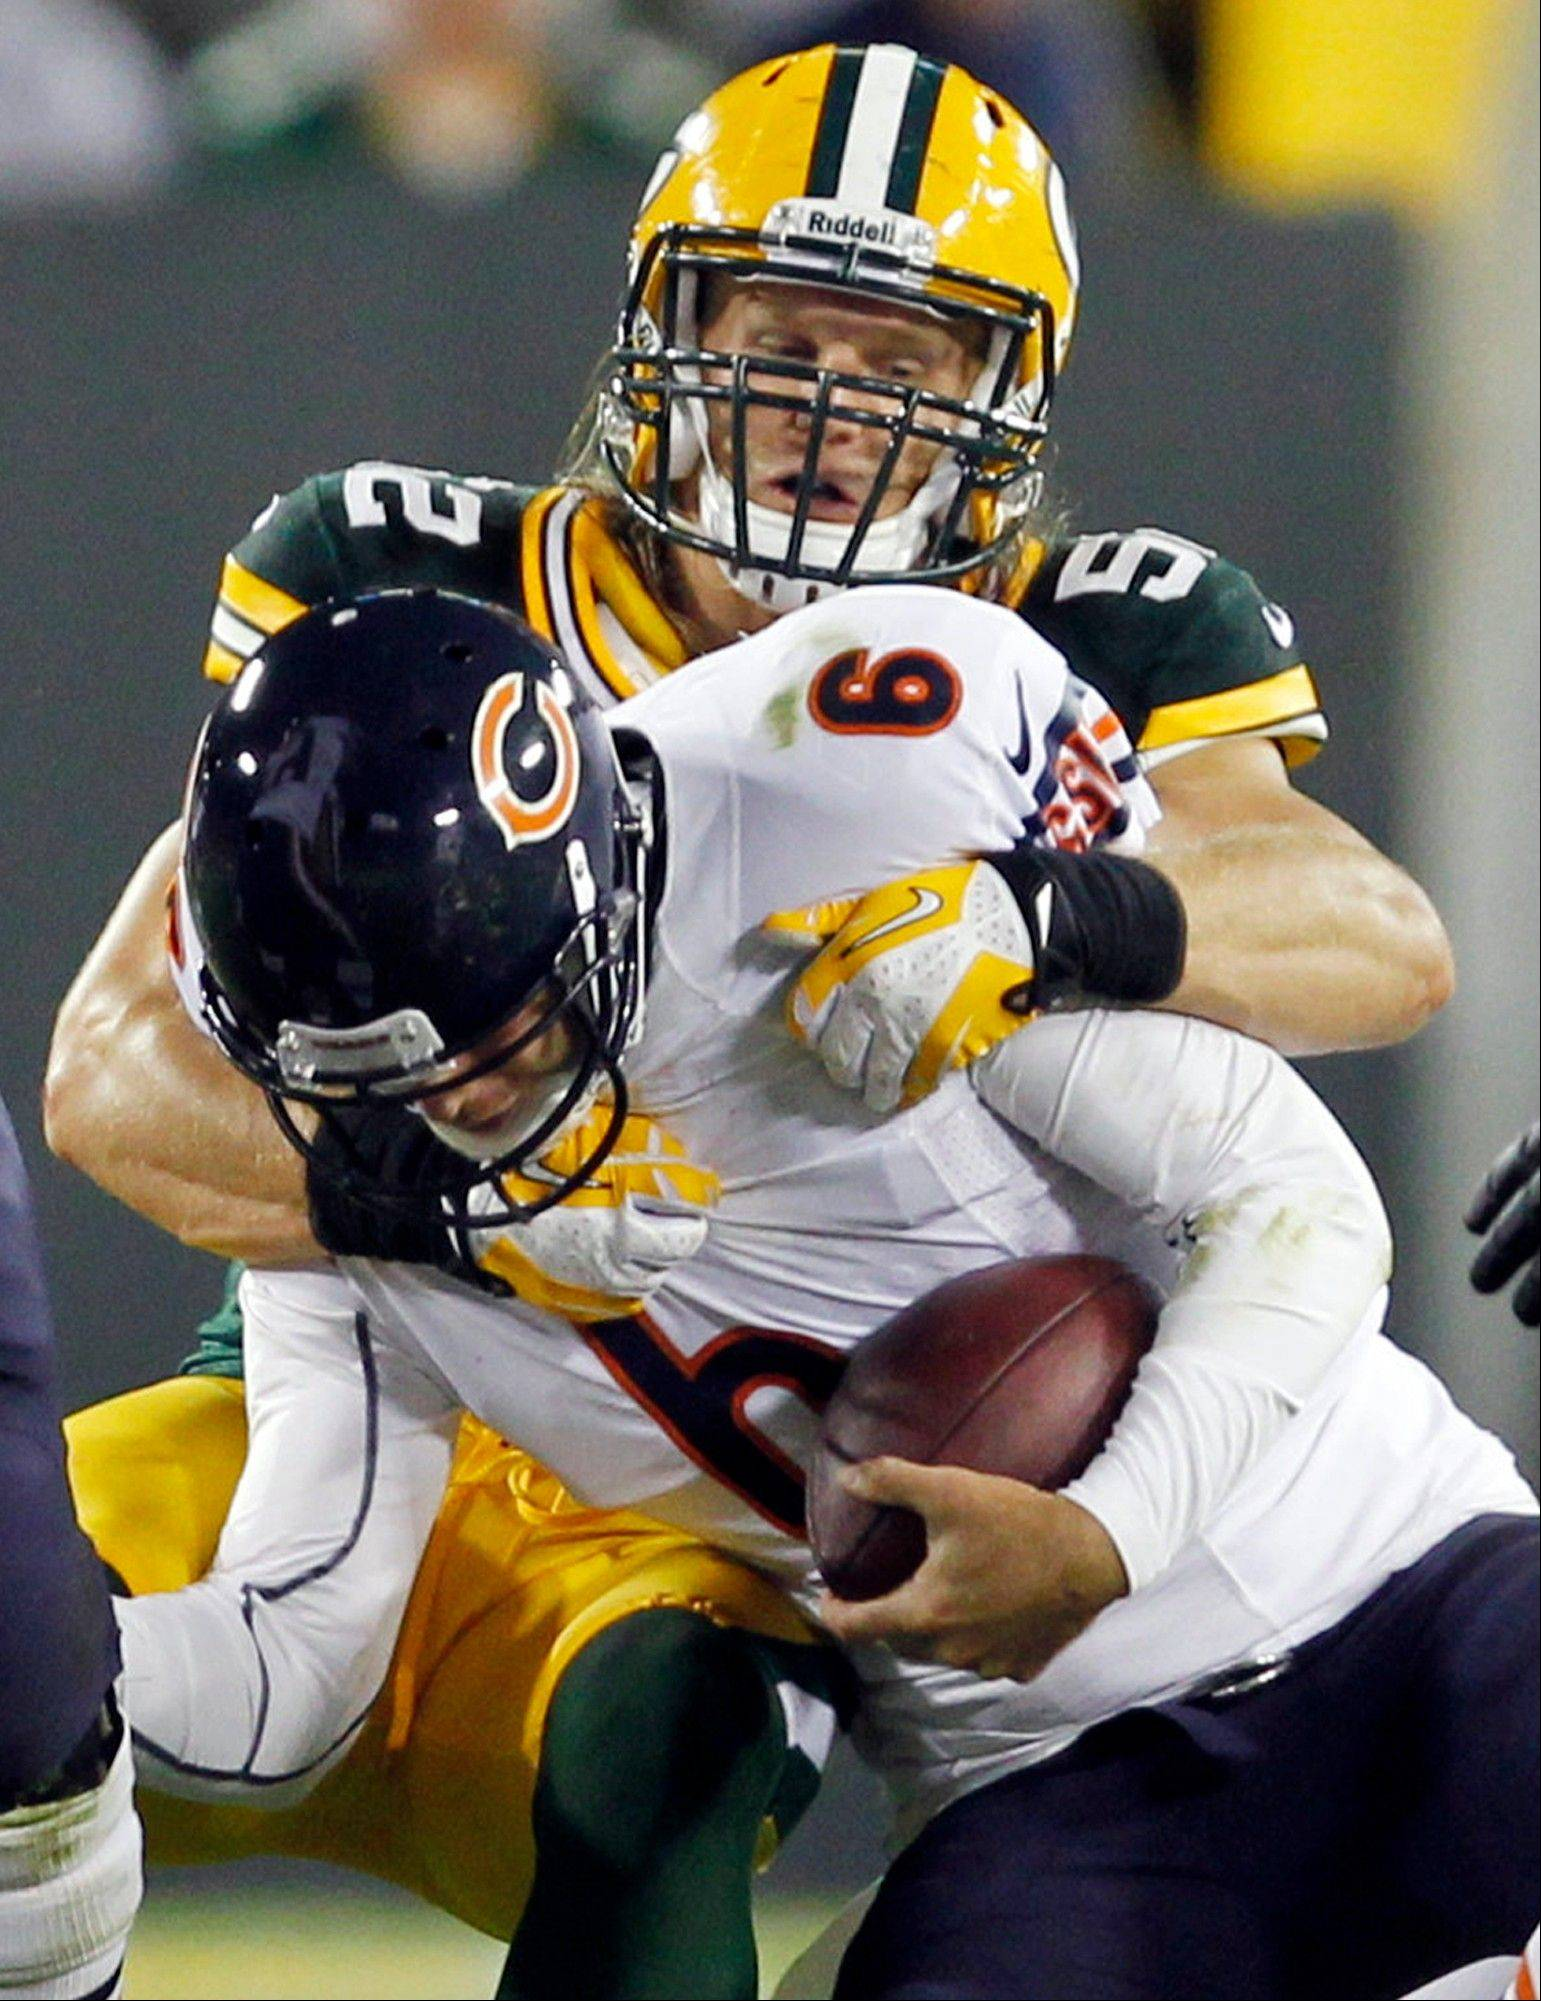 In this Sept. 13, 2012, file photo, Green Bay Packers' Clay Matthews sacks Jay Cutler during the first half. Matthews is expected to play today after missing time due to injury.